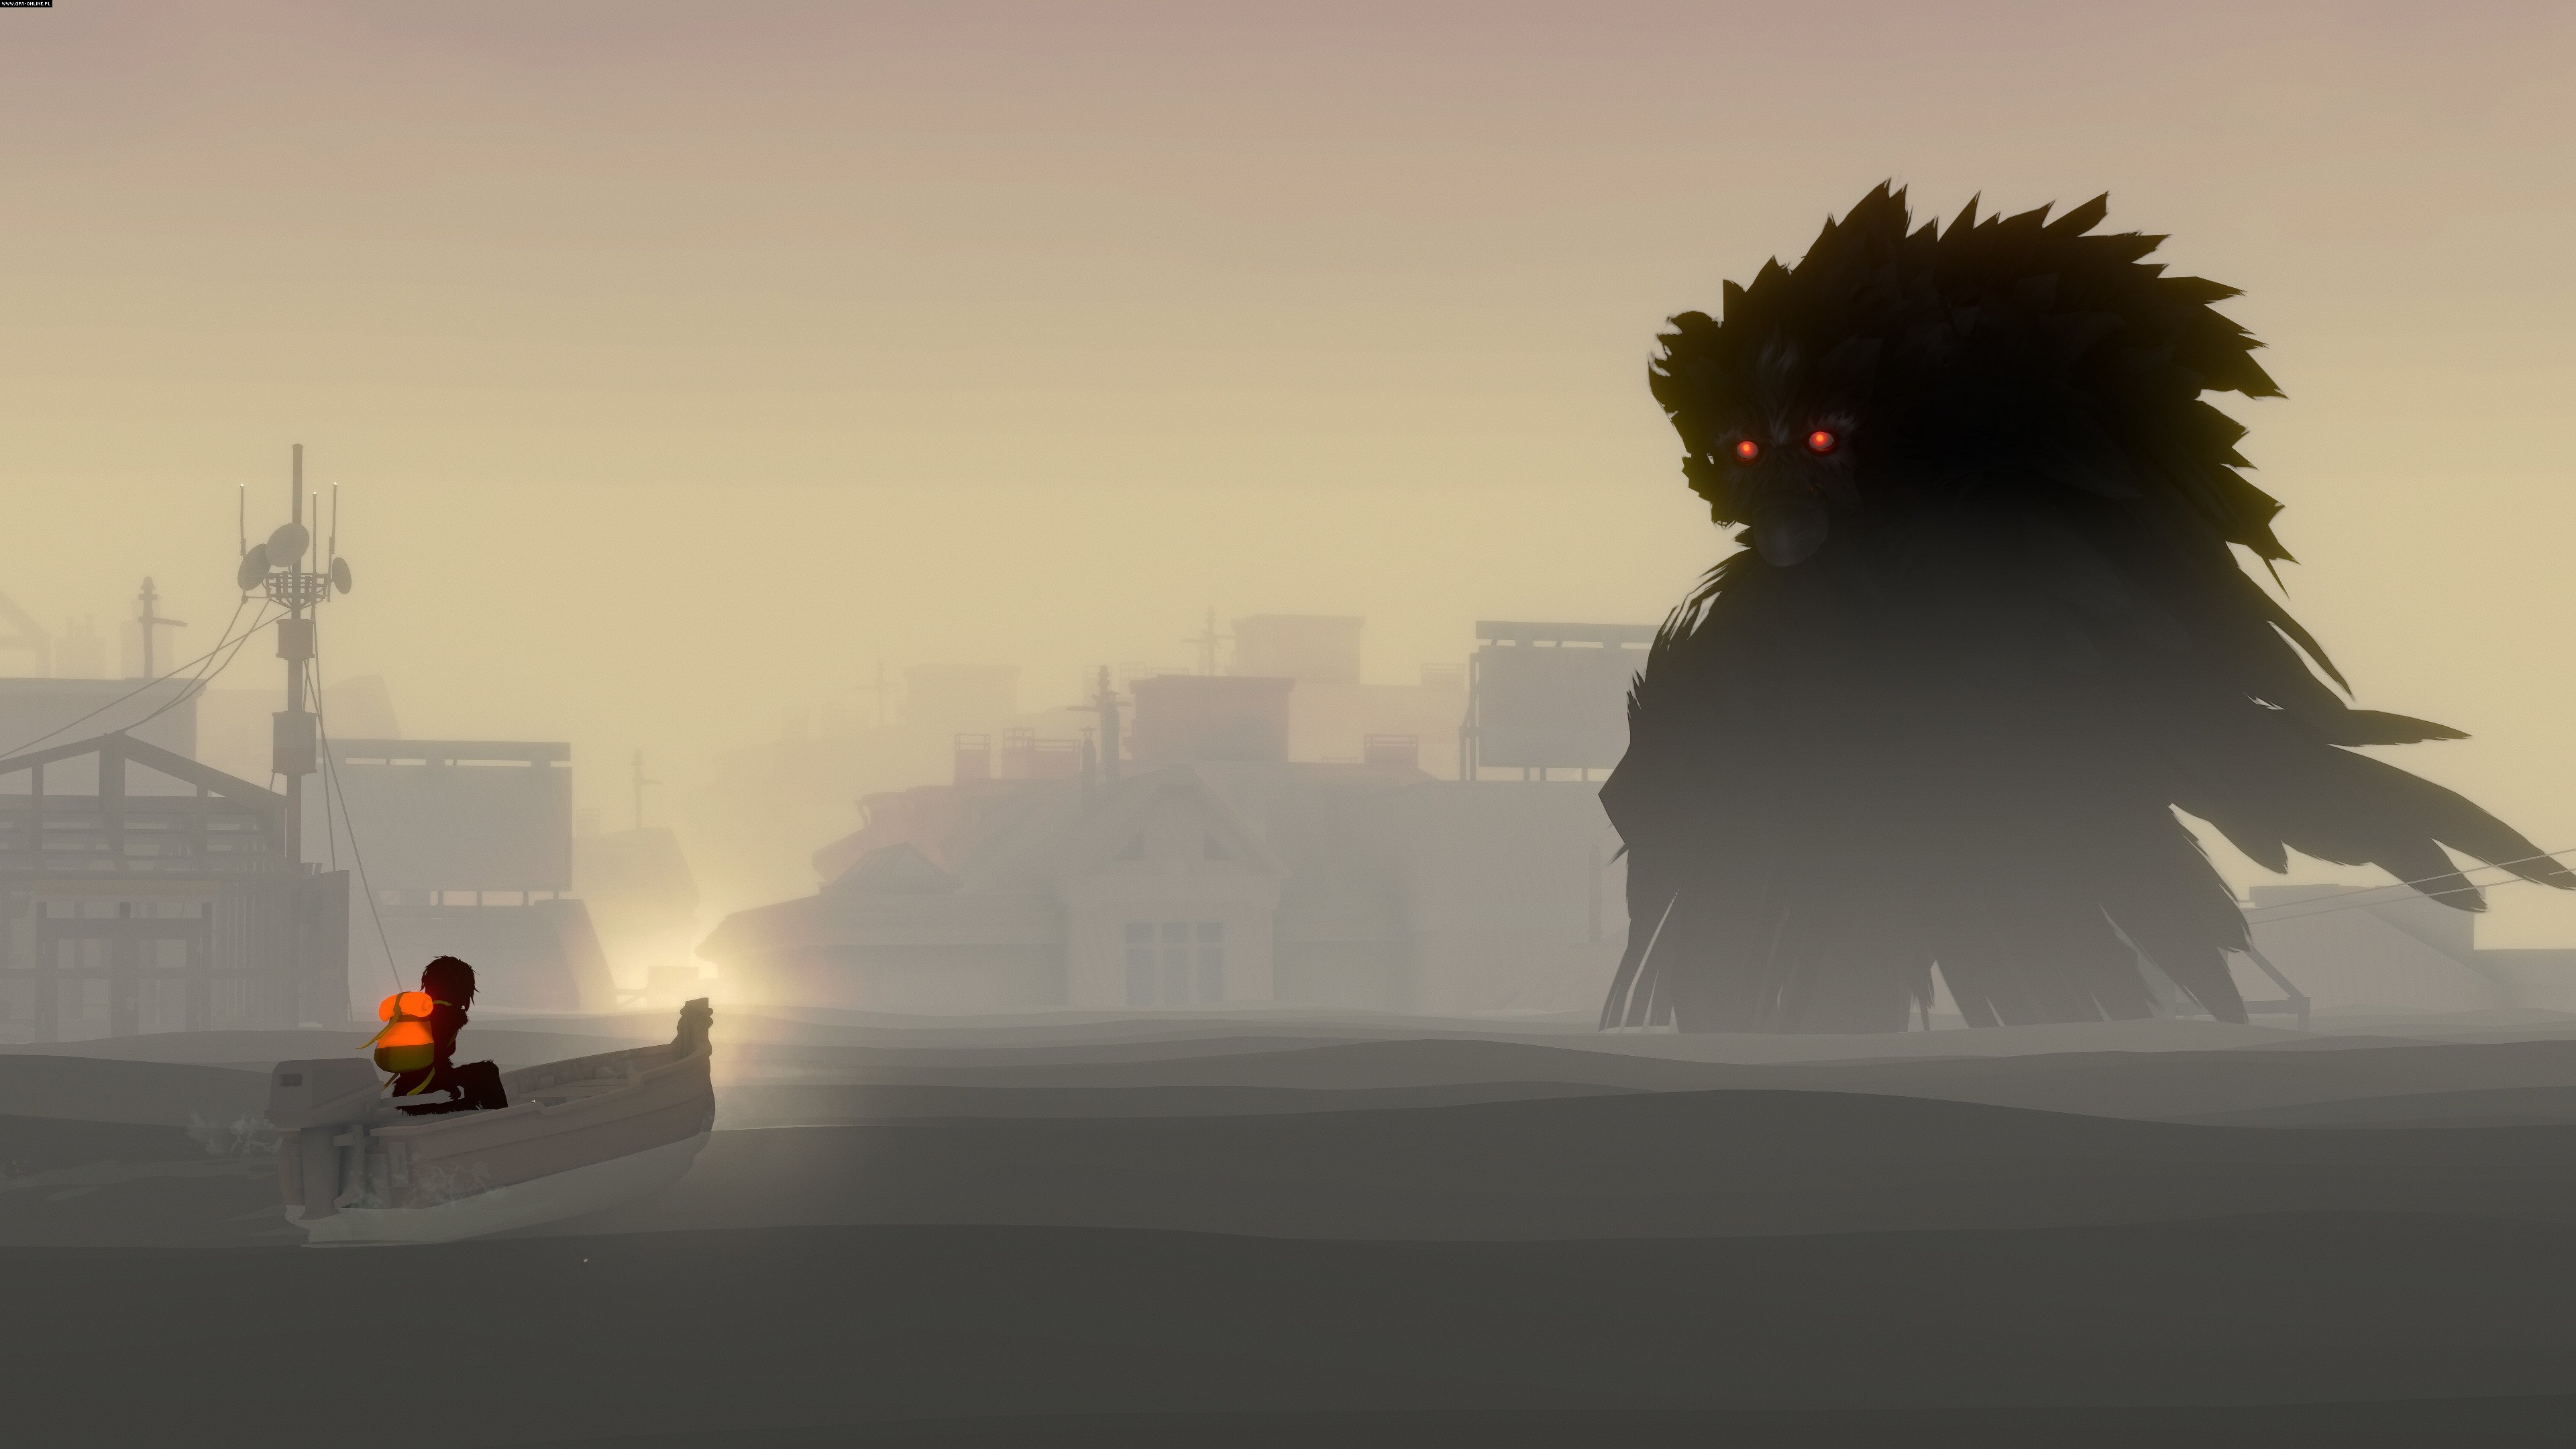 Sea of Solitude PC, PS4, XONE Gry Screen 4/23, Jo-Mei Games, Electronic Arts Inc.